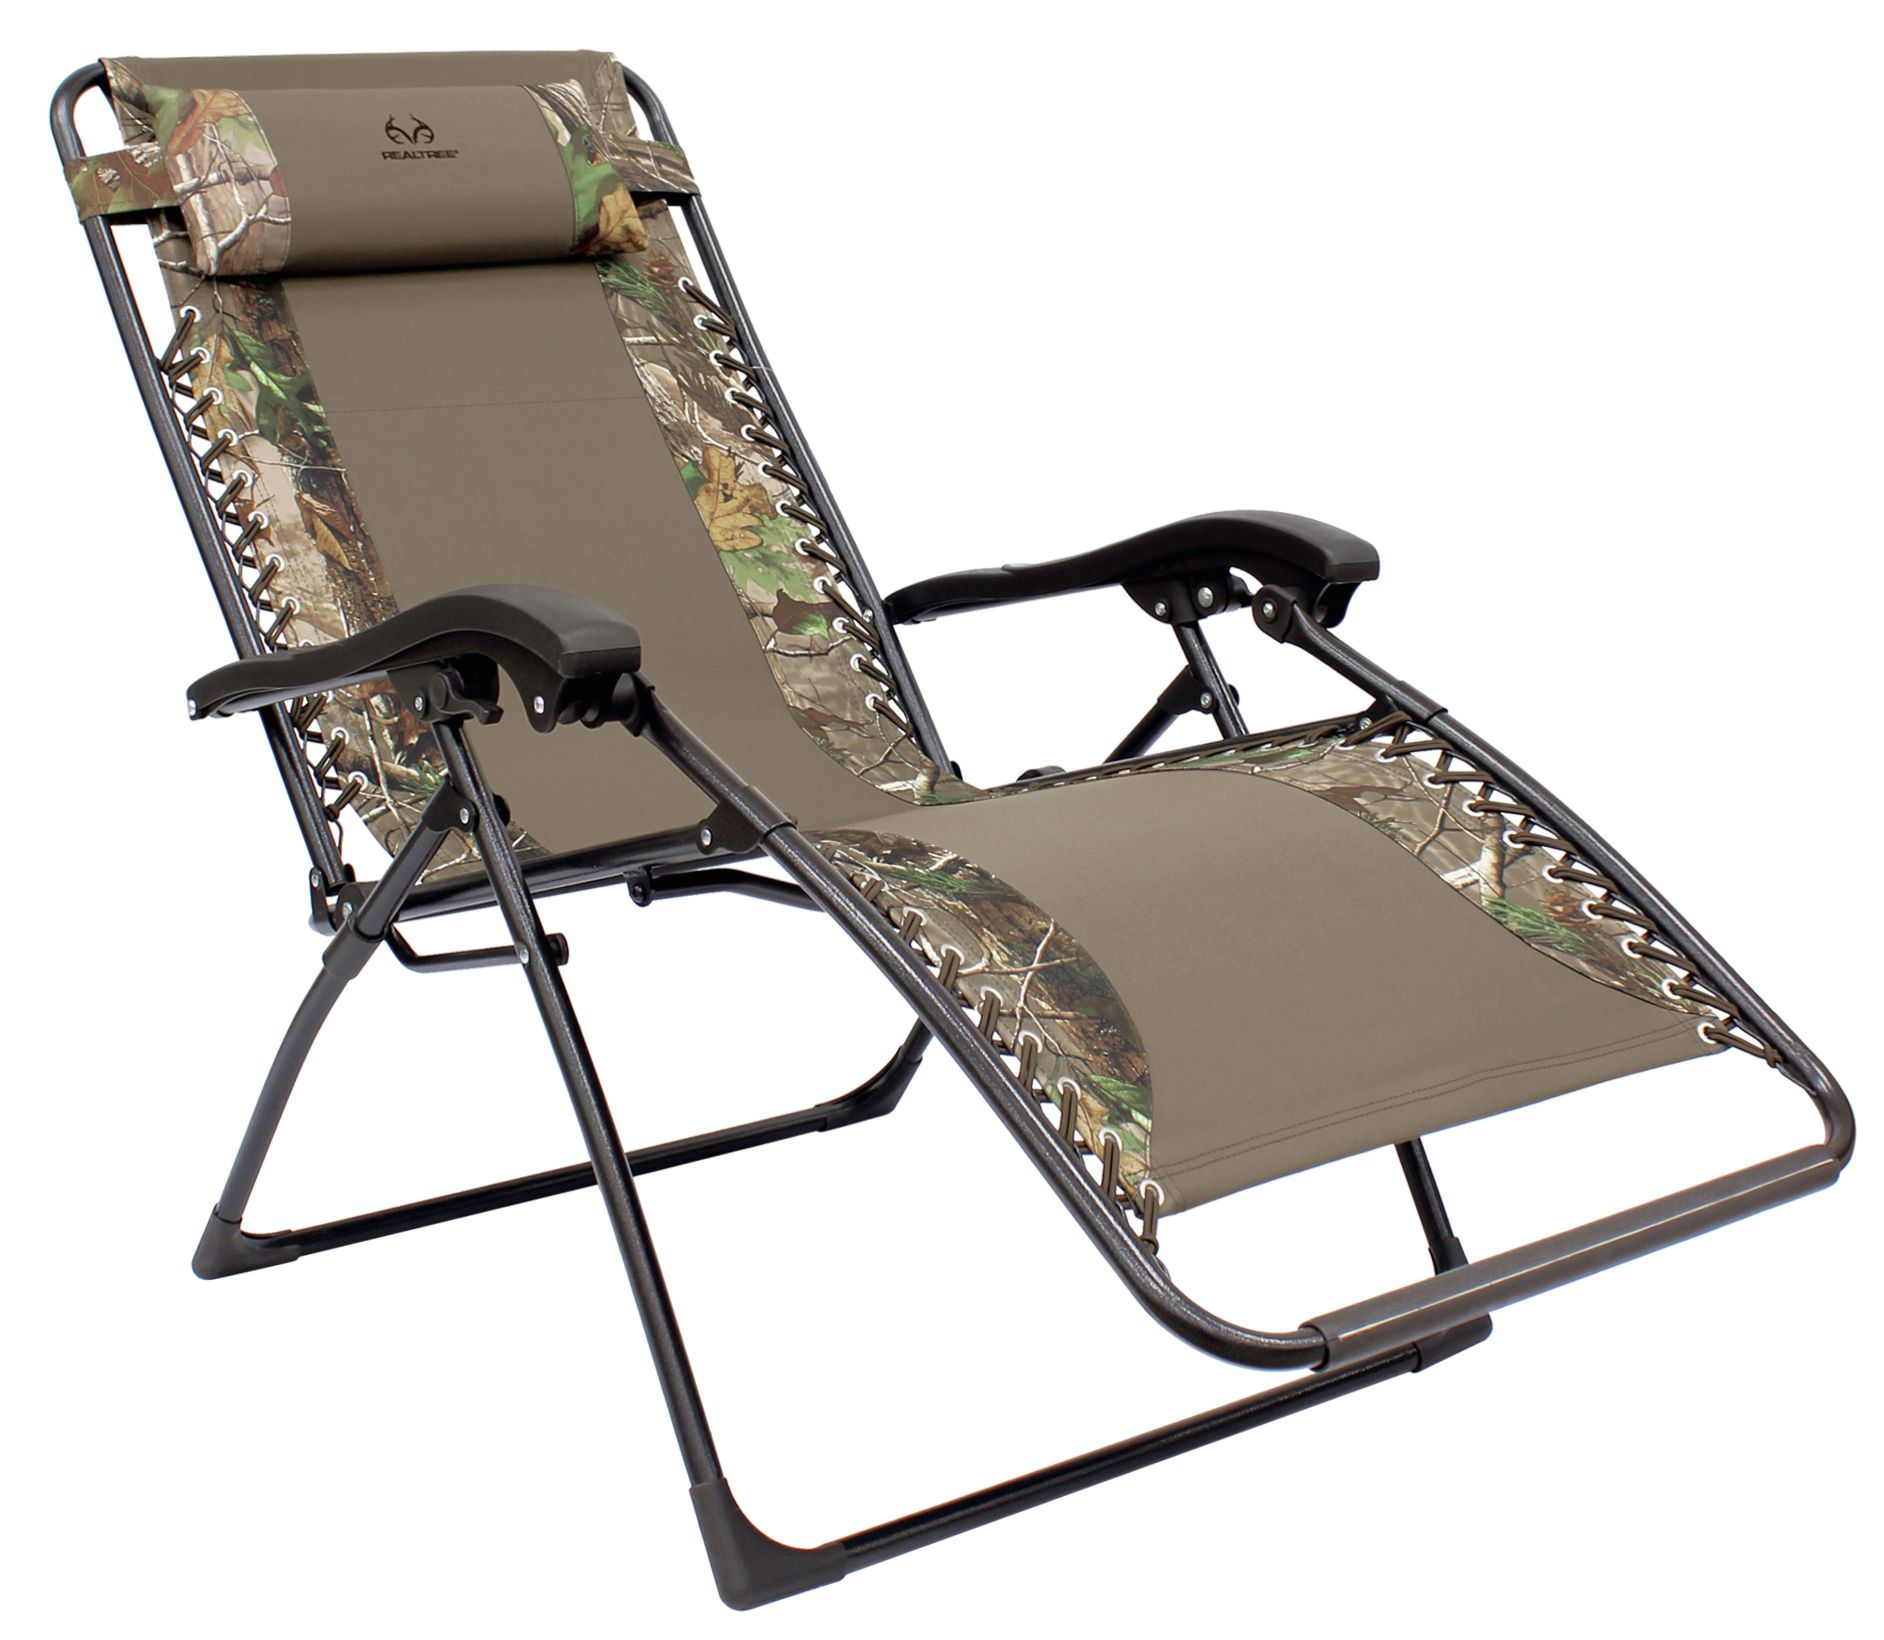 Summerwinds Realtree Zero Gravity Chair